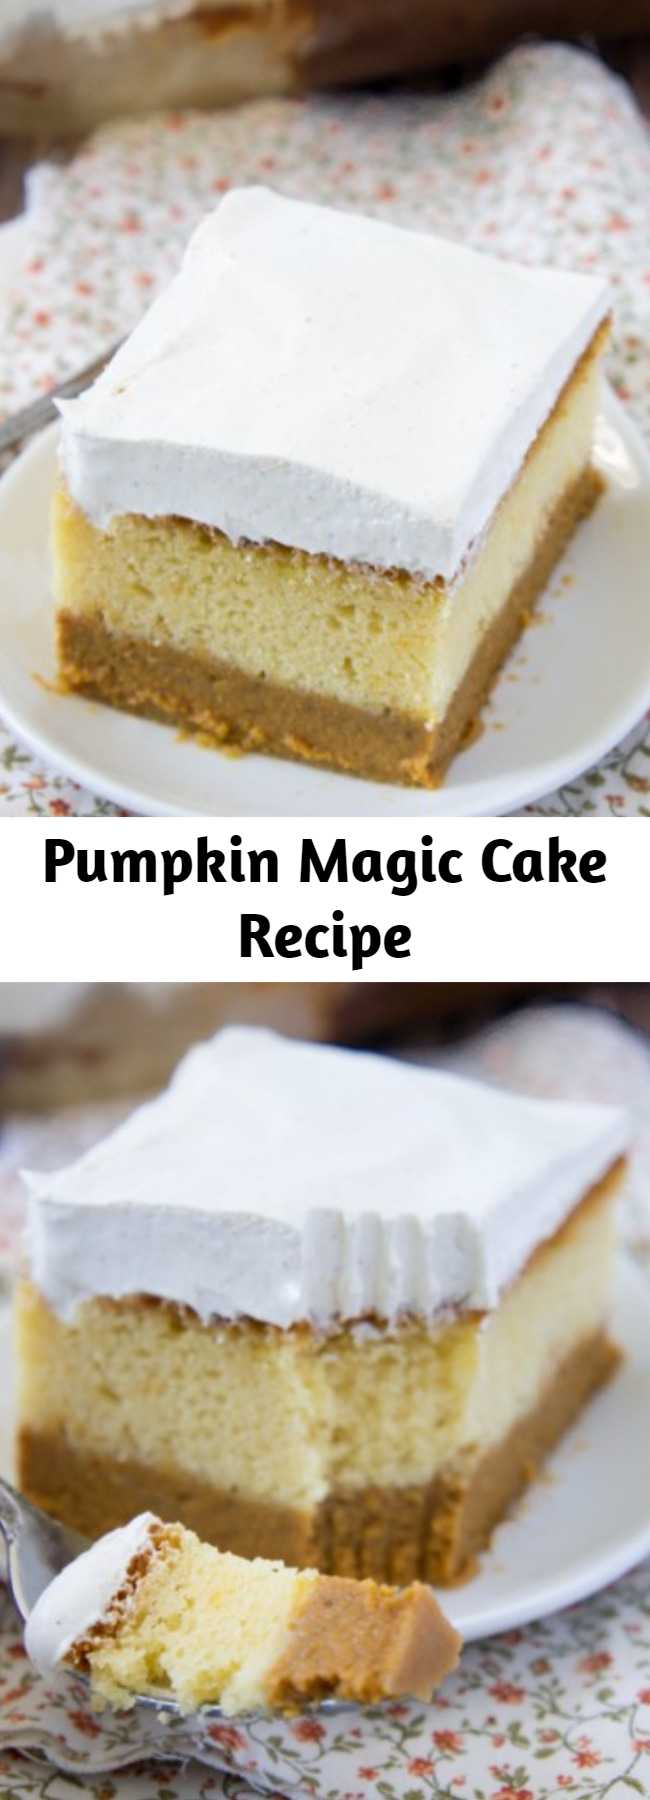 Pumpkin Magic Cake Recipe - PumpkinMagic Cake has a layer of pumpkin pie on the bottom, a layer of cake in the middle, finished off with a sweet layer of pumpkin pie spiced pudding/frosting on top.